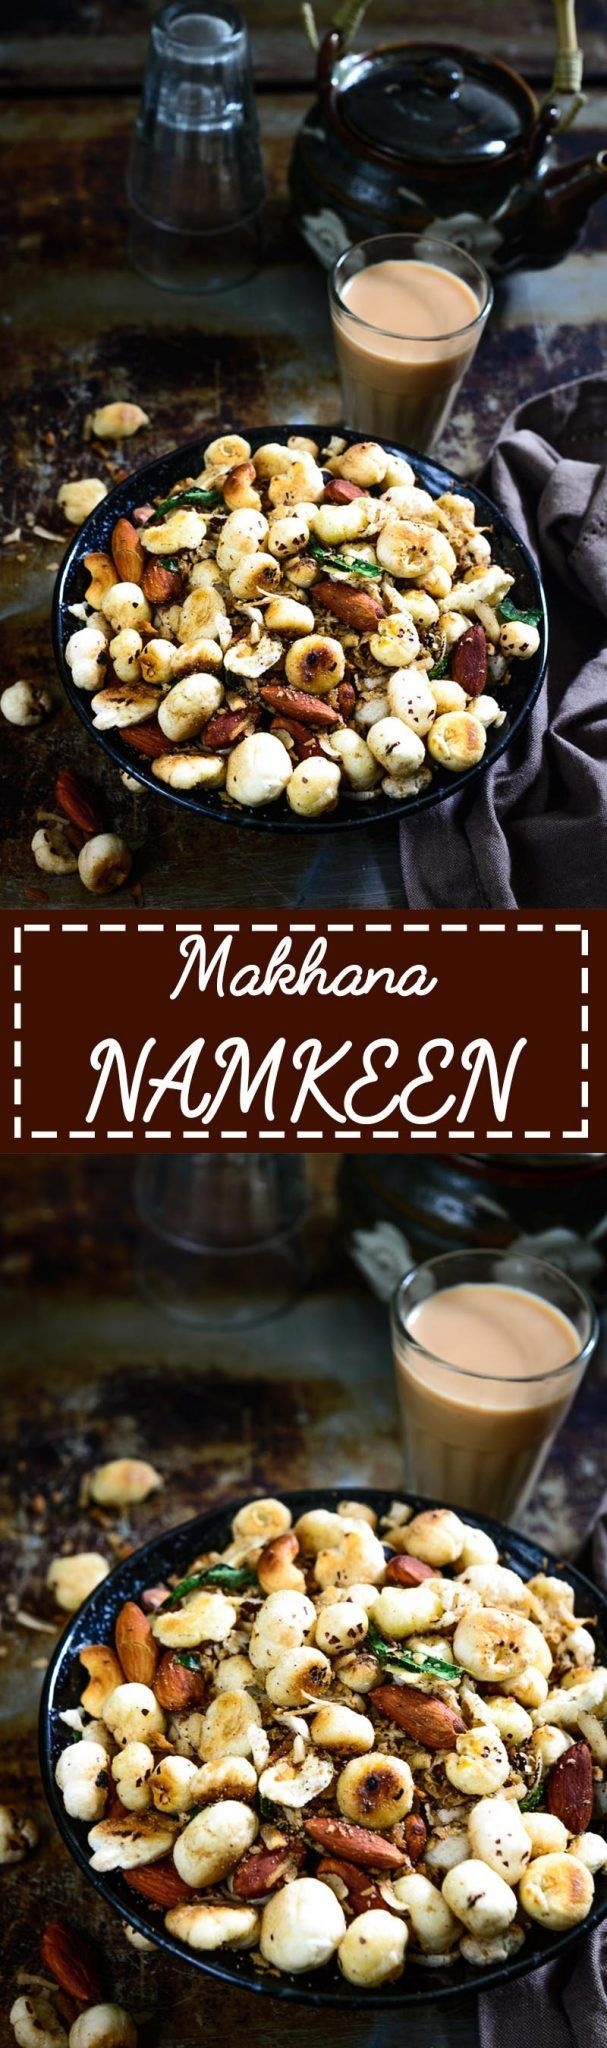 Makhana Namkeen is a low fat, tasty snack that is also great for health. Indian, snack, easy, recipe, haelthy, best, quick, falahari, fast, fasting, vrat, navratri, shivratri, janamashtami, diwali, festival via @WhiskAffair